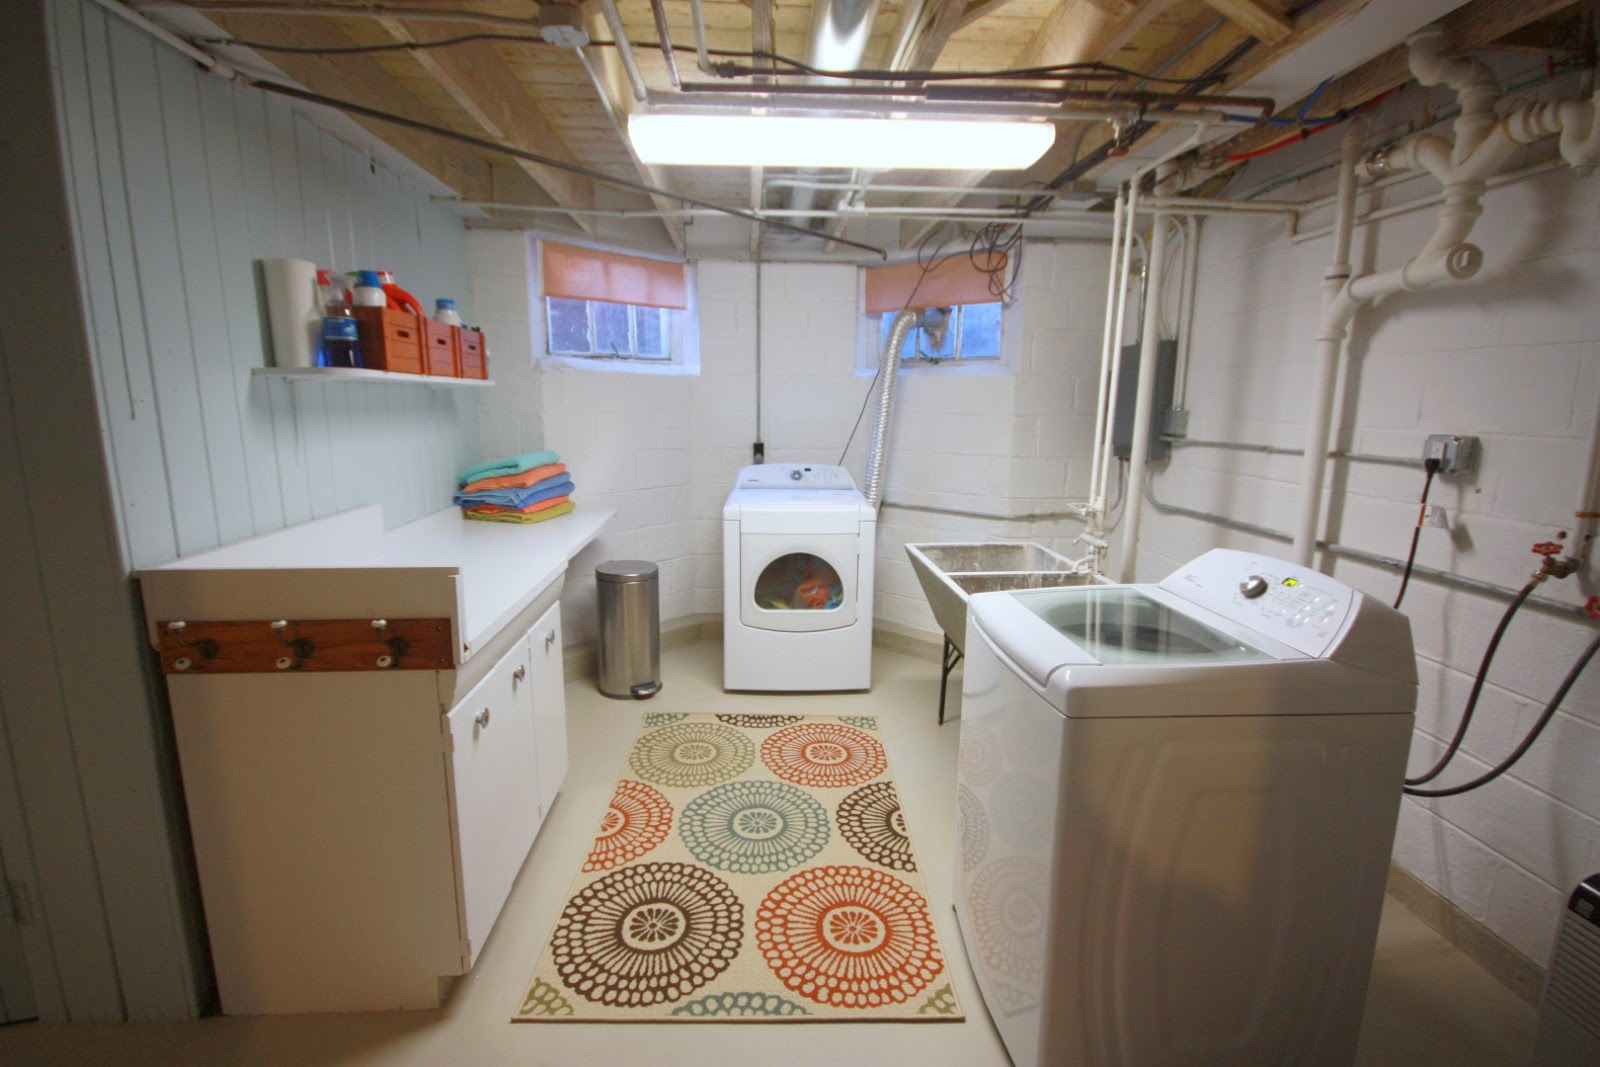 Russet Street Reno Our Laundry Room